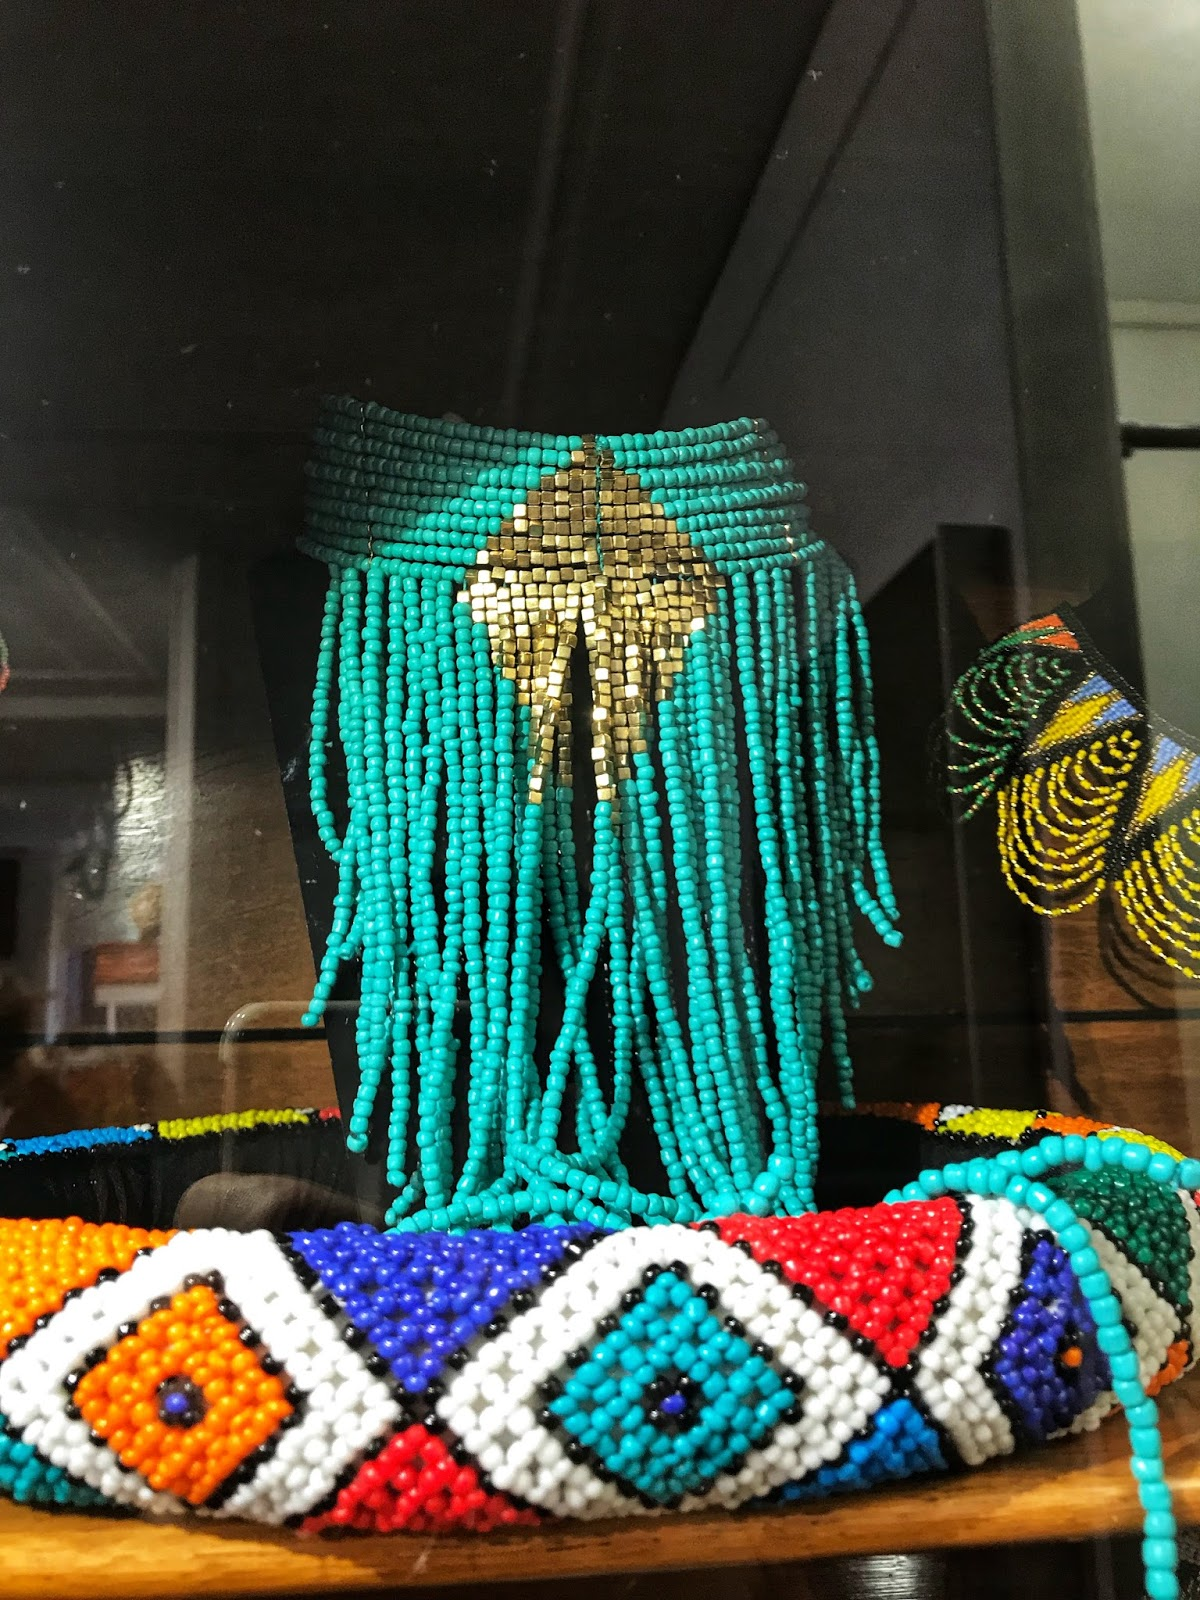 Colourful beaded necklaces Lady Africa Shopping in The Hague